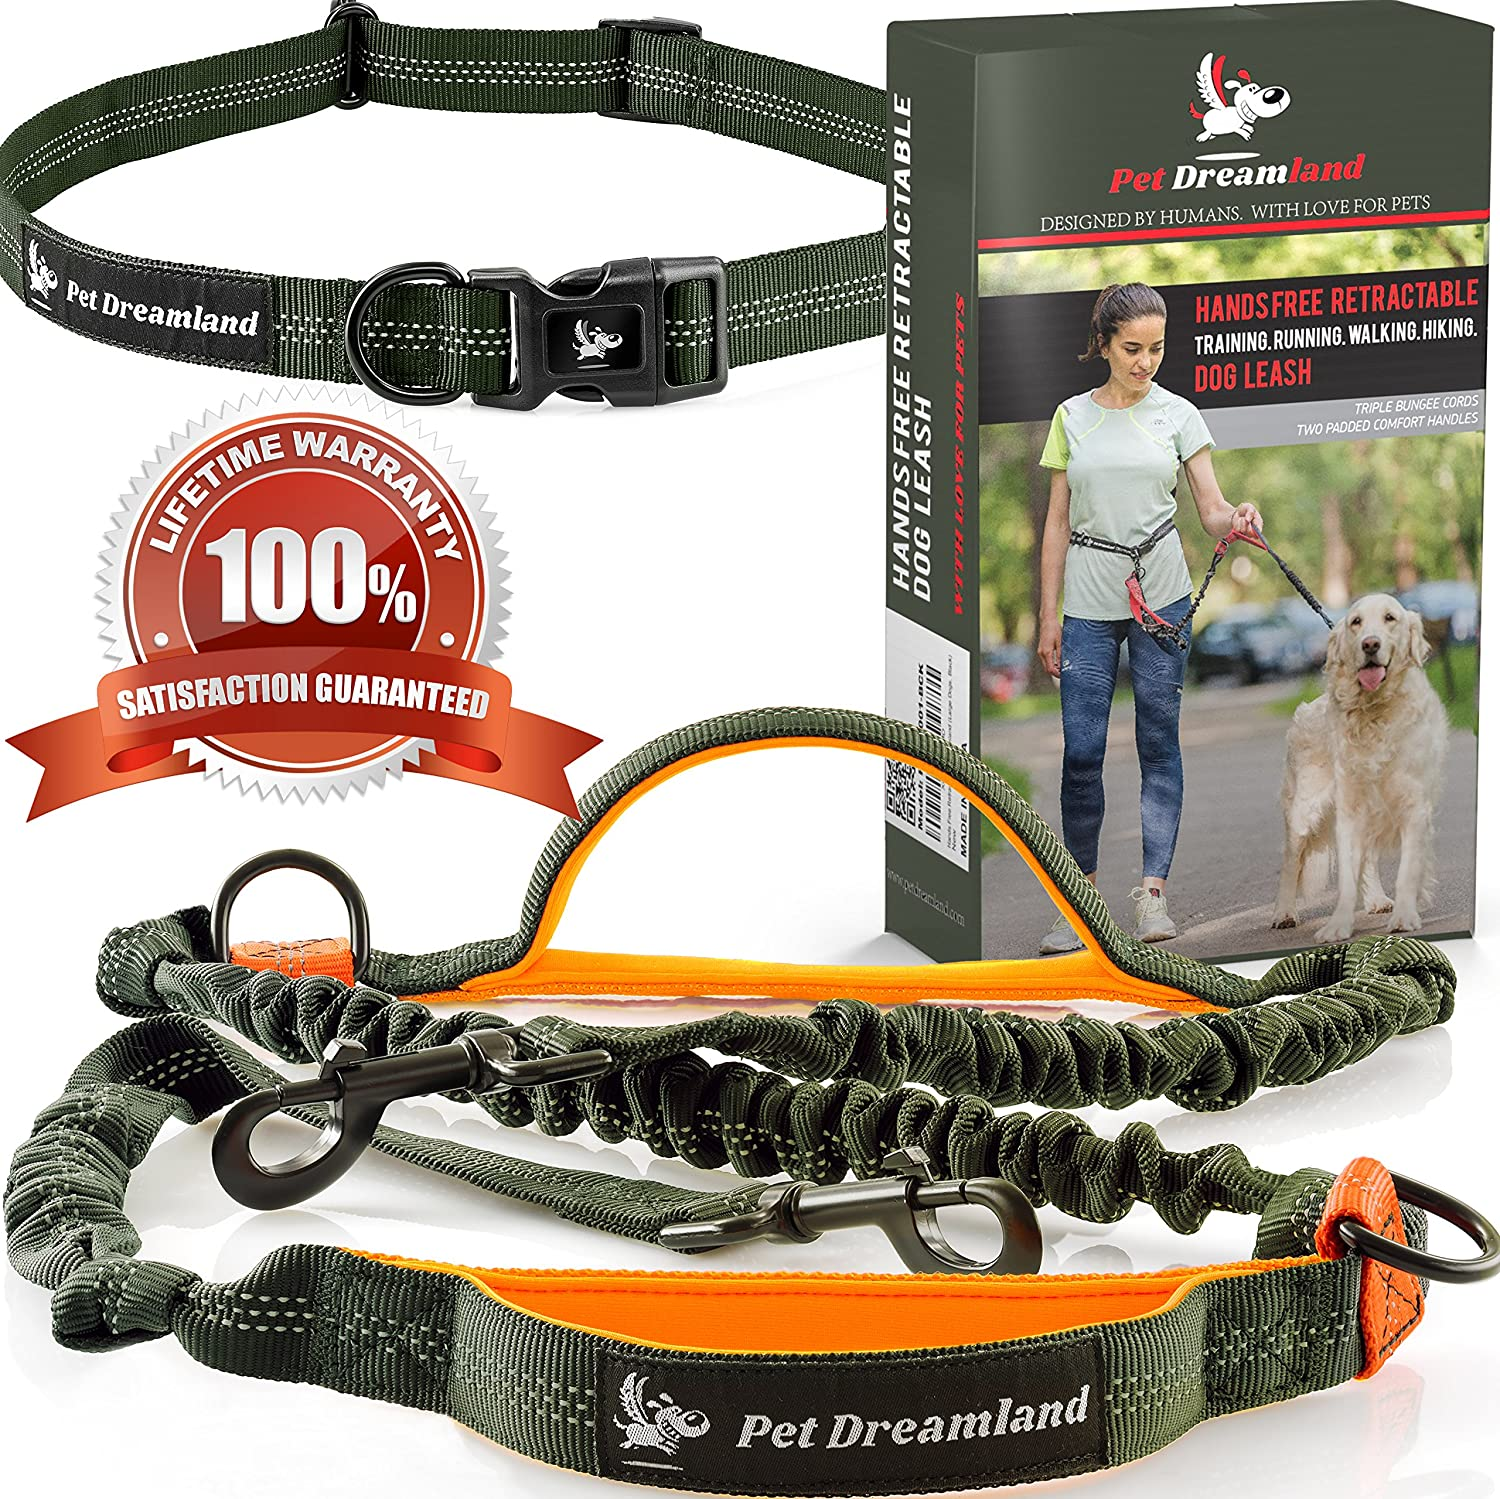 The Best Dog Leashes For Hiking: Reviews & Buying Guide 9